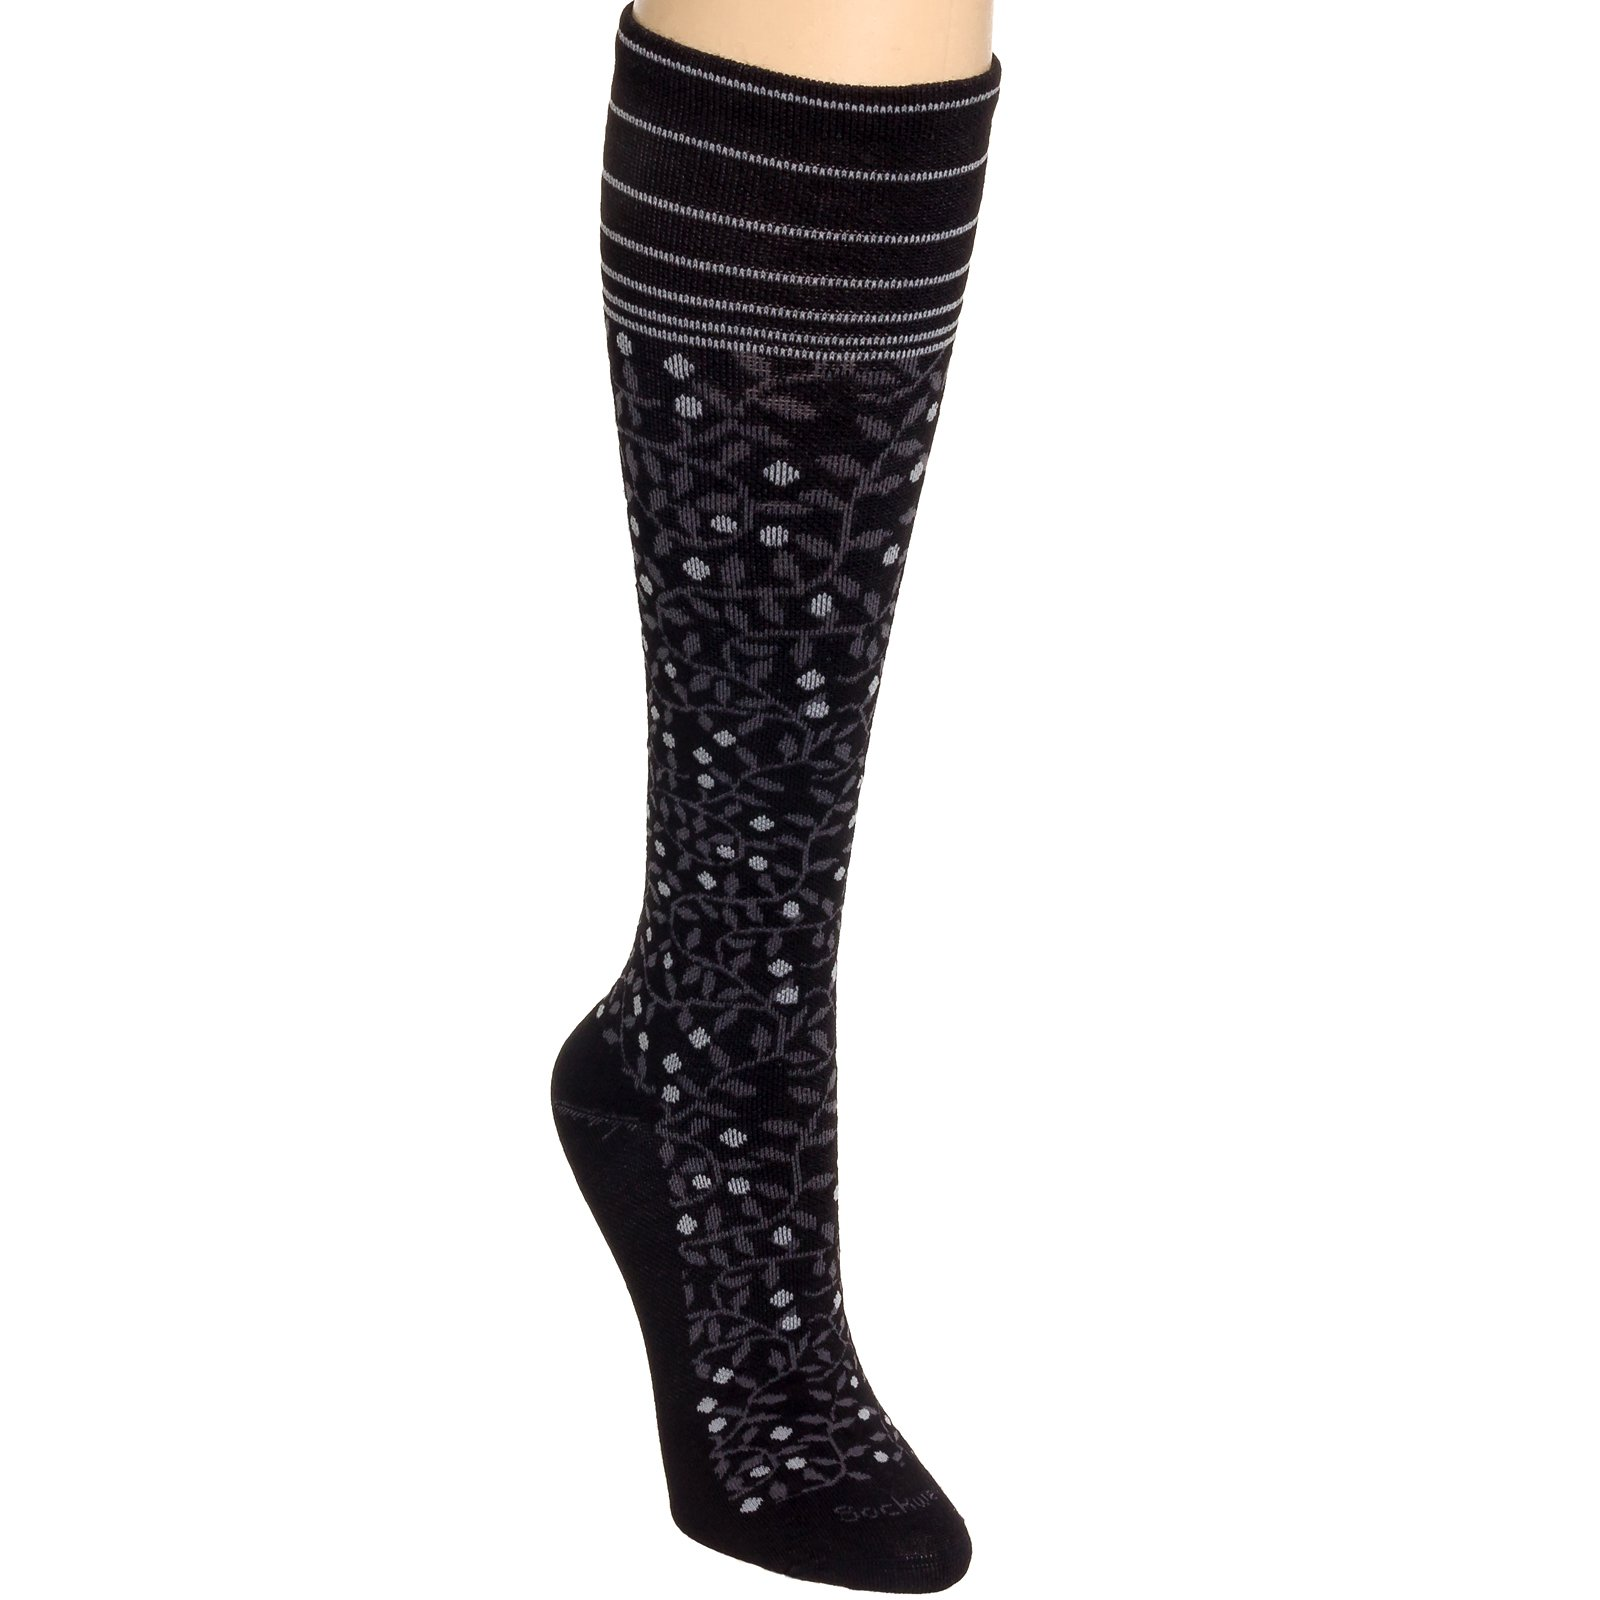 Sockwell New Leaf Non-Cushion Sock - Women's Black Medium/Large